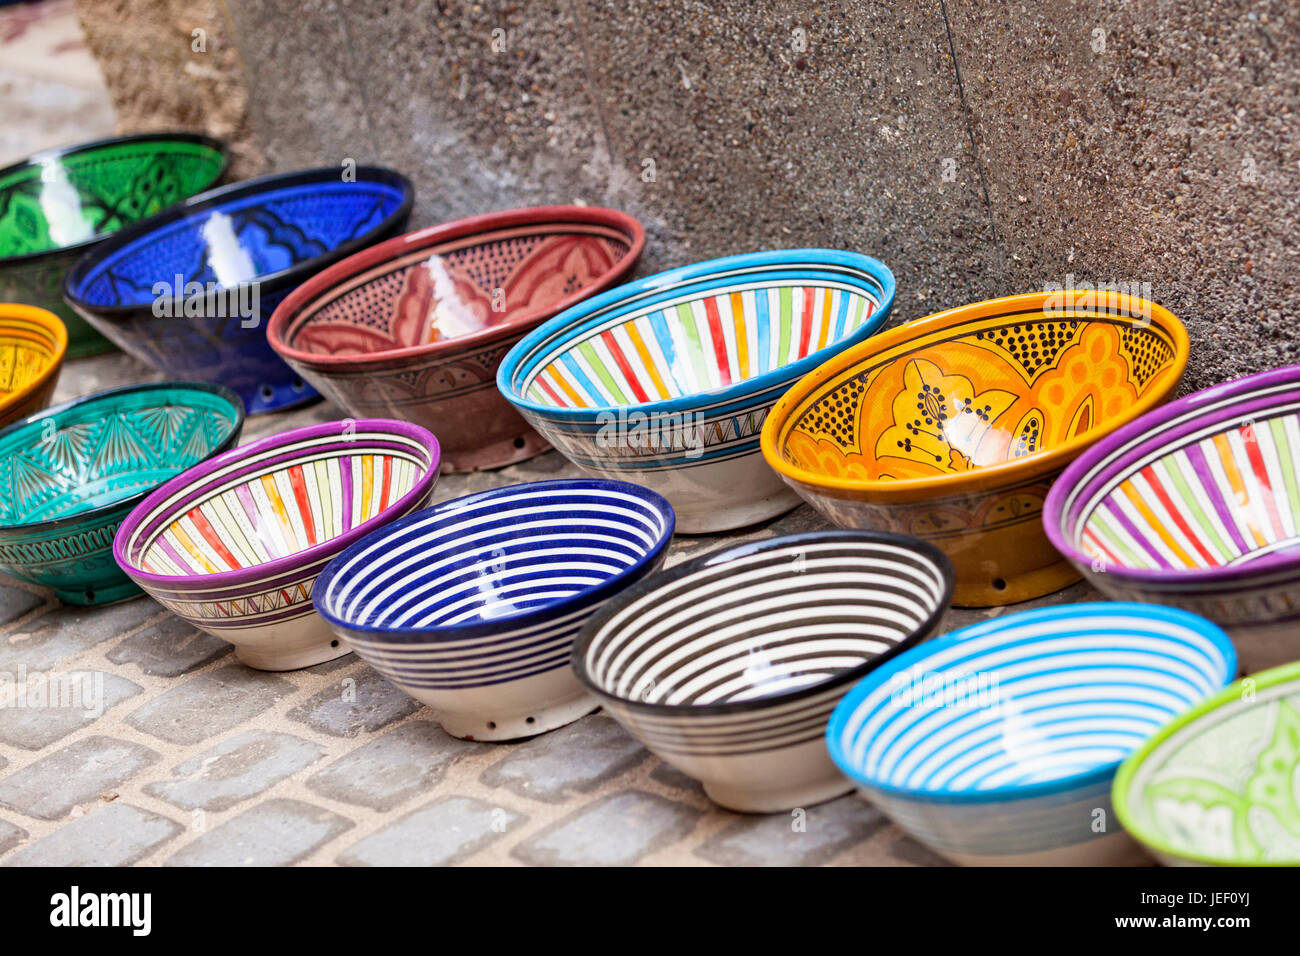 Traditional moroccan bowls stock photos traditional moroccan moroccan bowls pottery souvenirs for sale in the souks of the old medina essaouira reviewsmspy